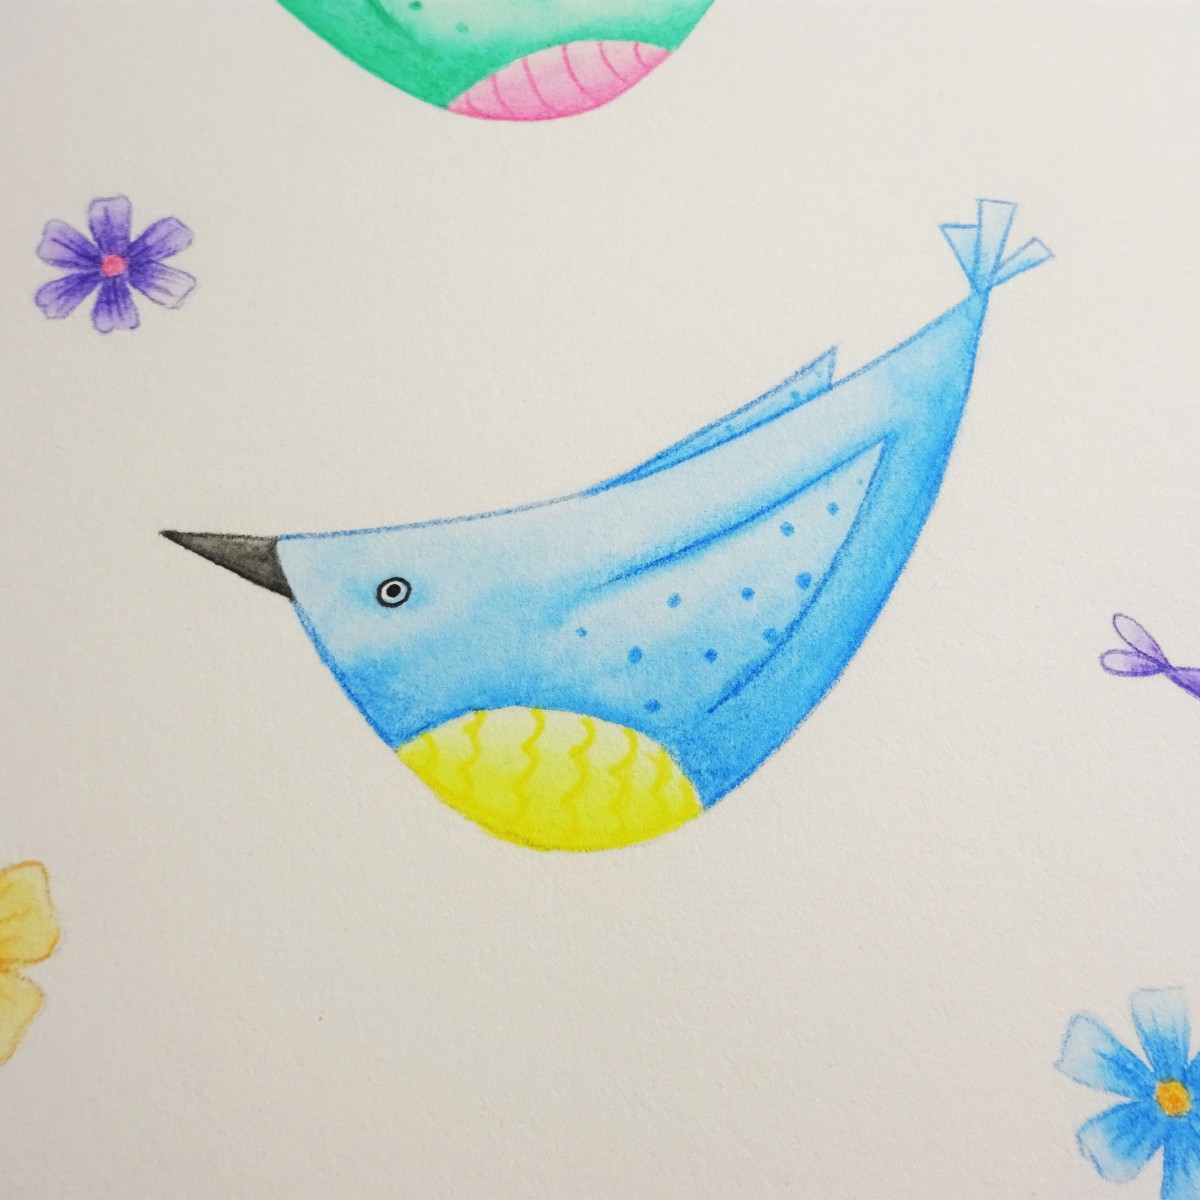 A blue watercolour pencil bird surrounded by flowers